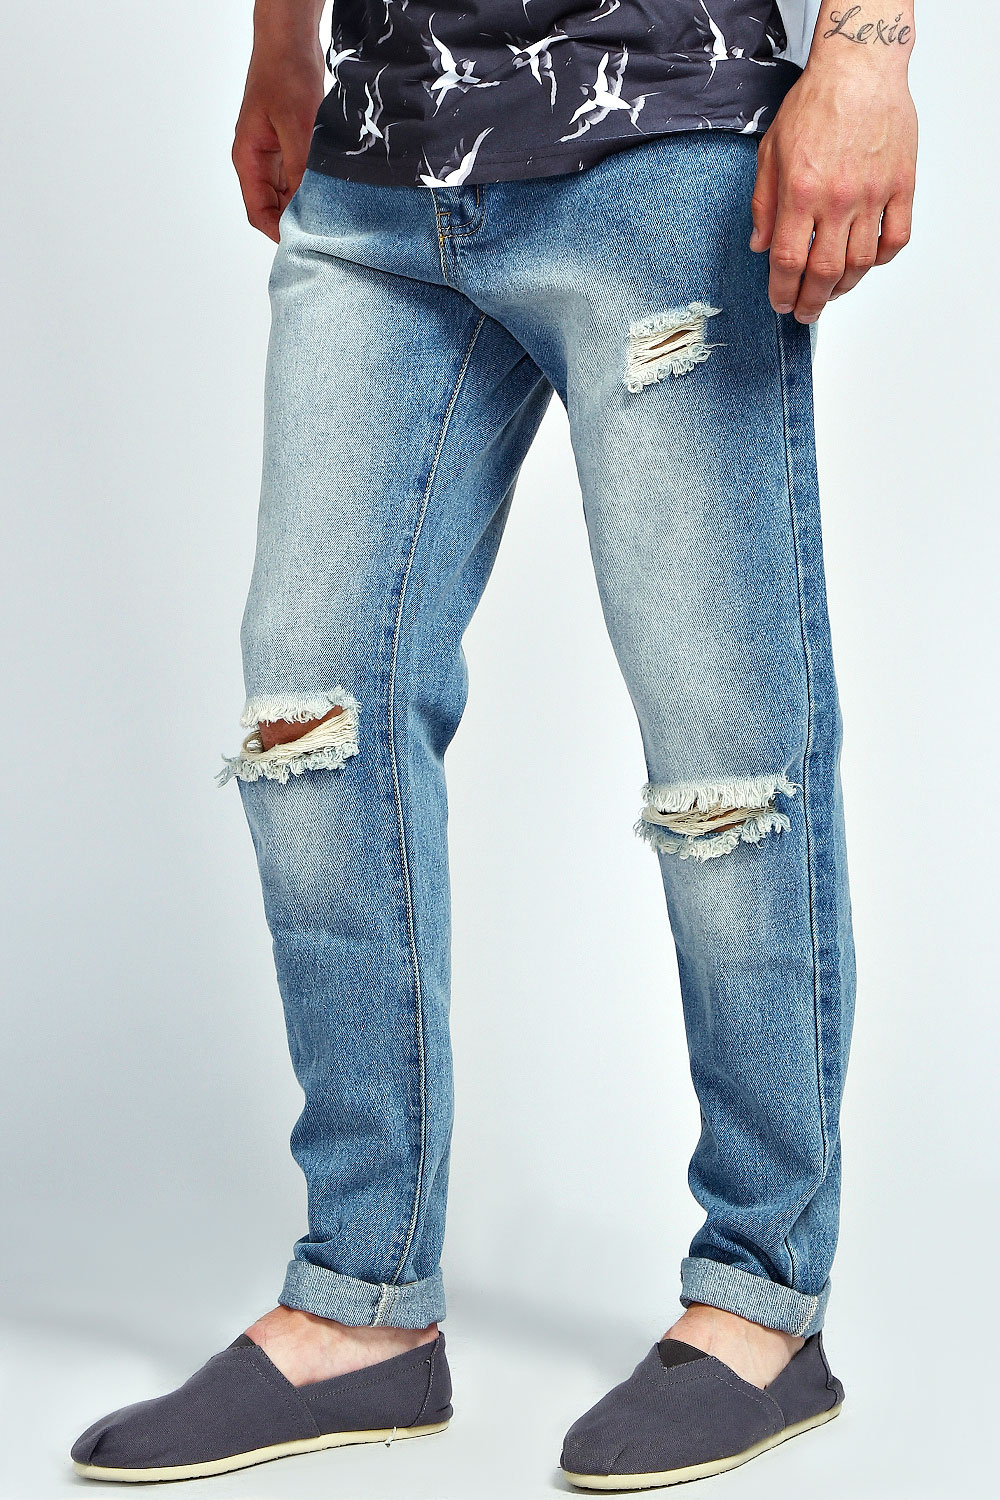 Mens Ripped Knee Jeans - Is Jeans